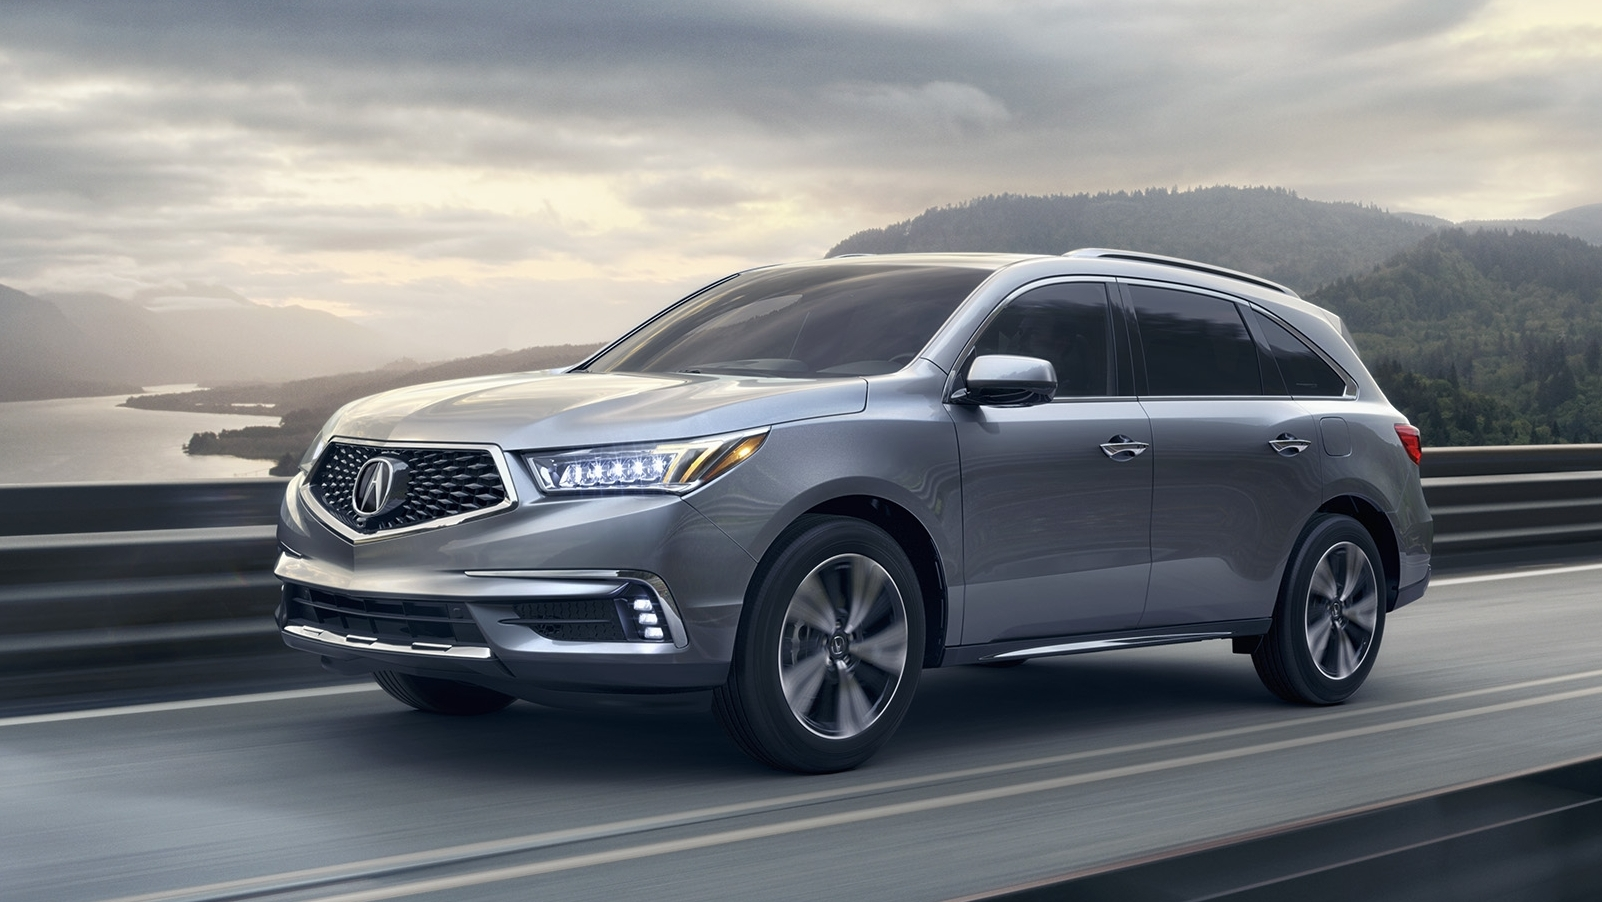 2017 acura mdx review top speed. Black Bedroom Furniture Sets. Home Design Ideas